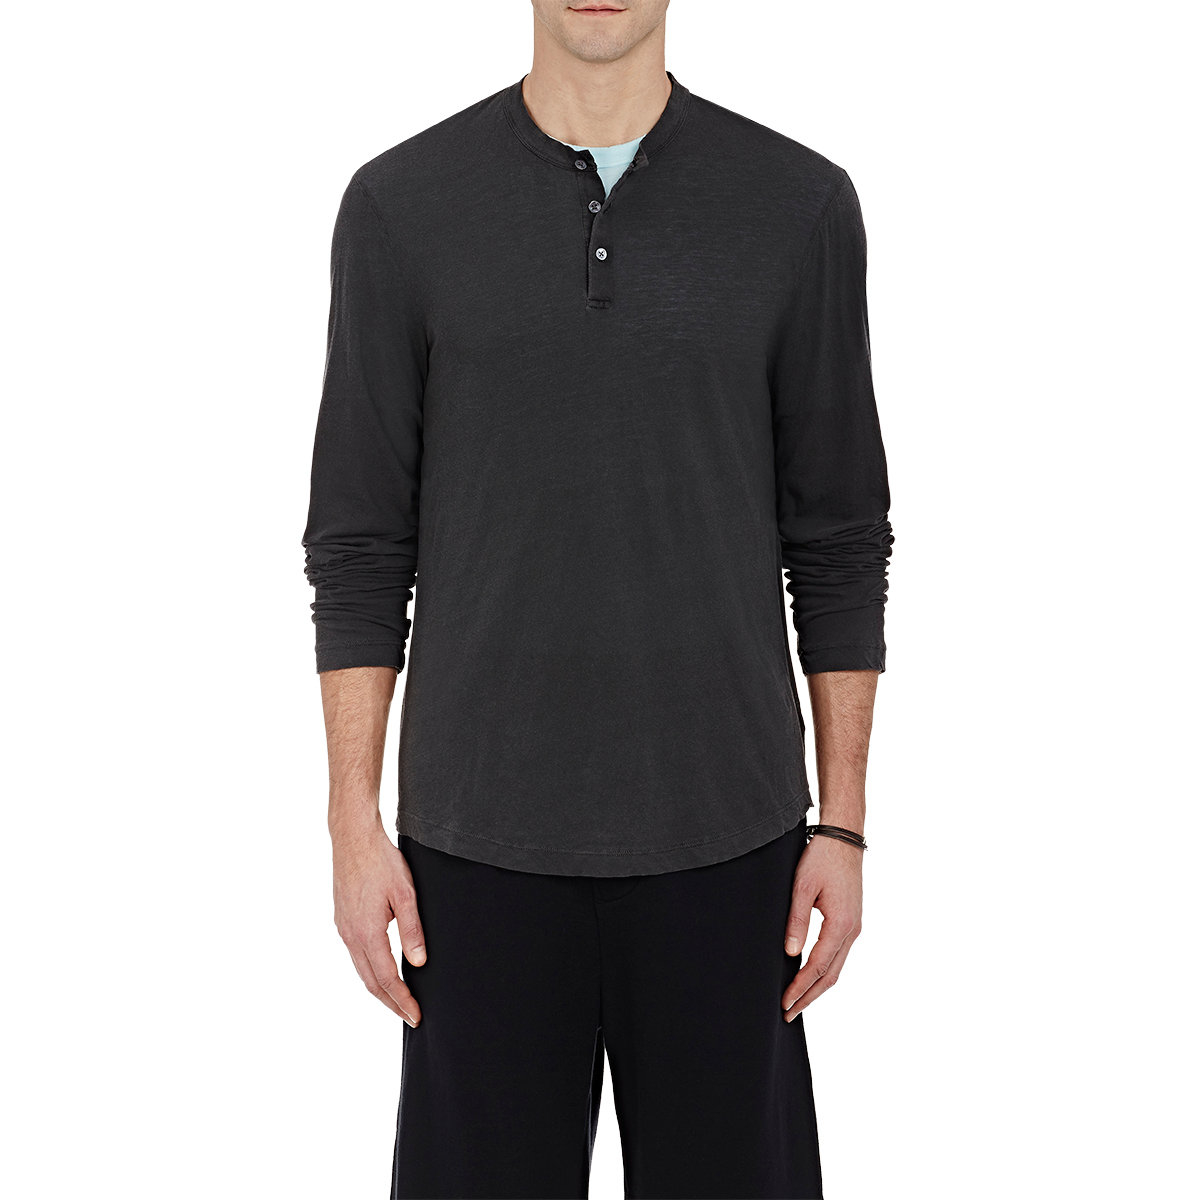 James perse slub jersey henley in black lyst for James perse henley shirt